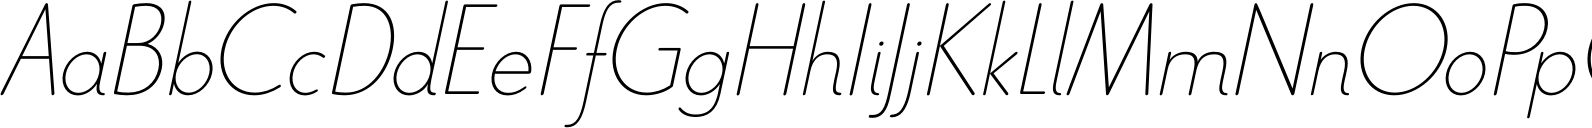 Le Havre Rounded Thin Italic